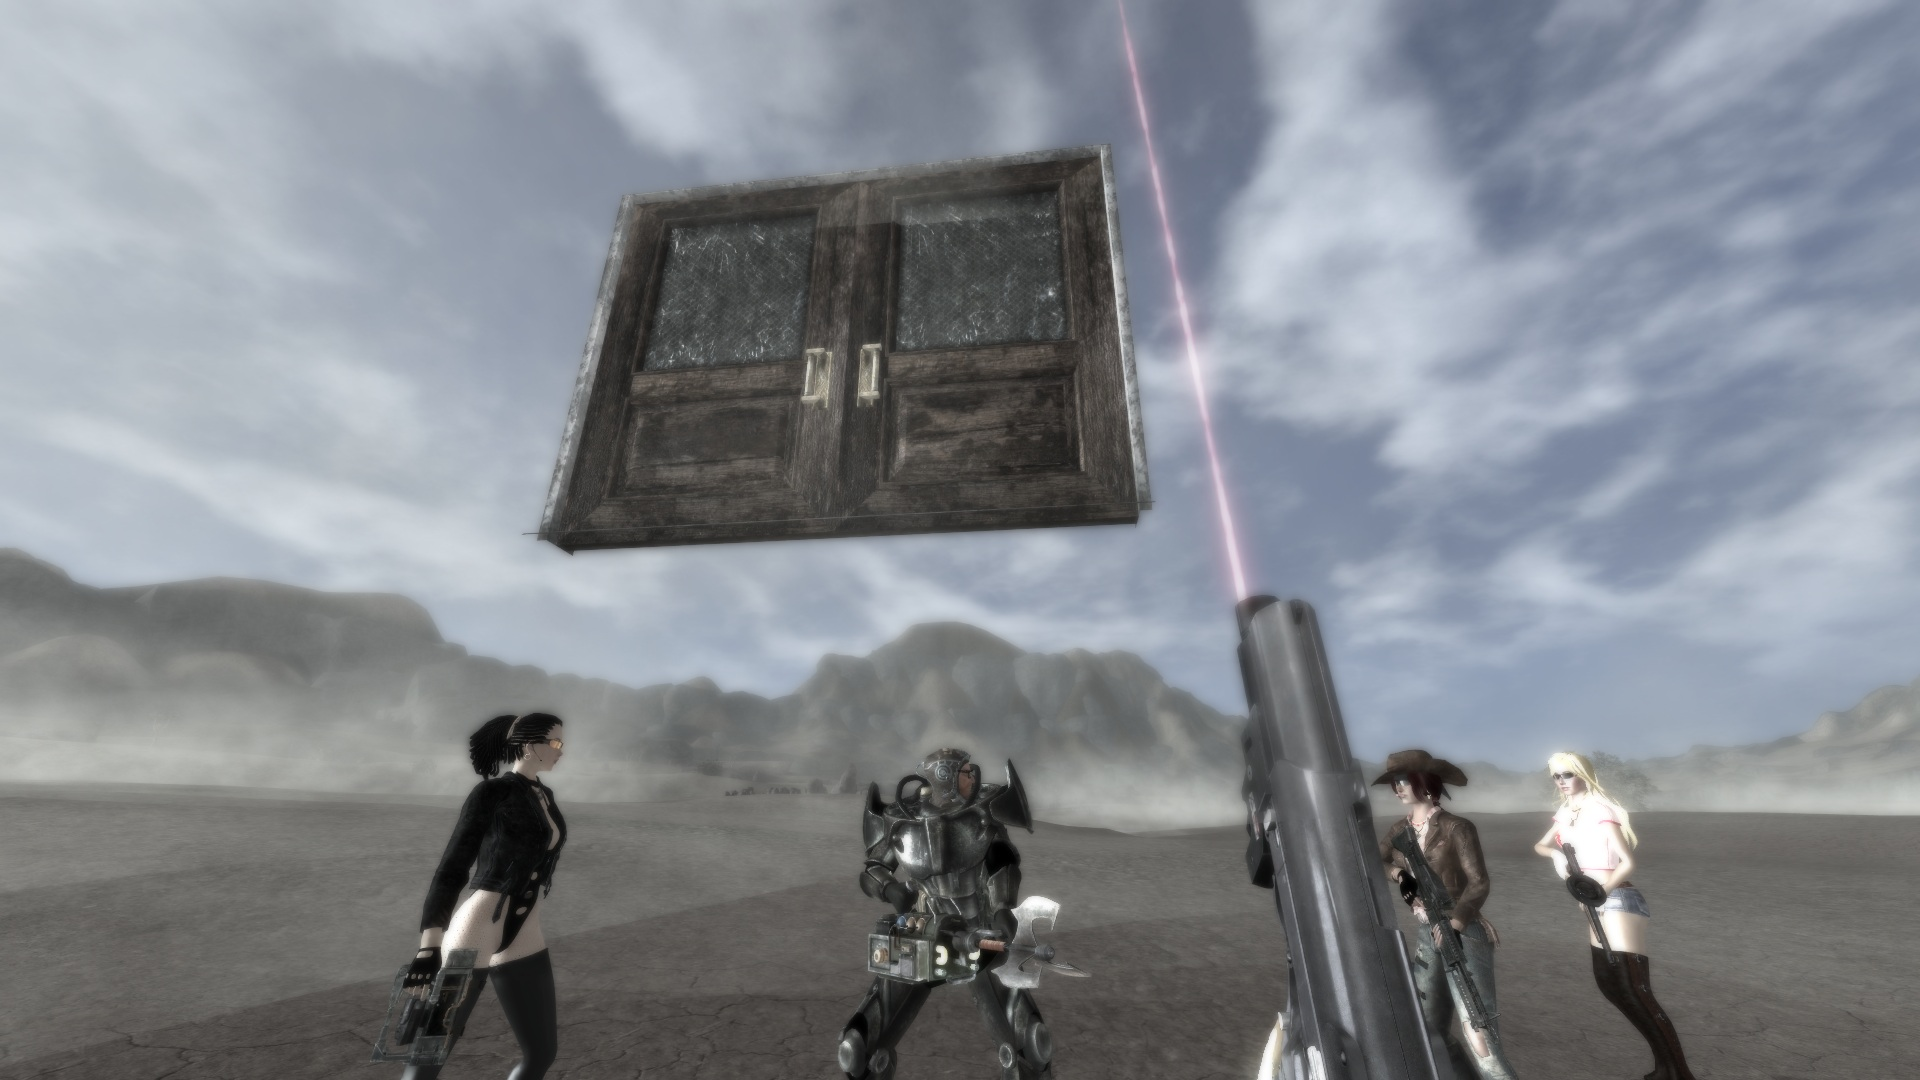 Floating Door WTF & Fallout New Vegas - mods and community